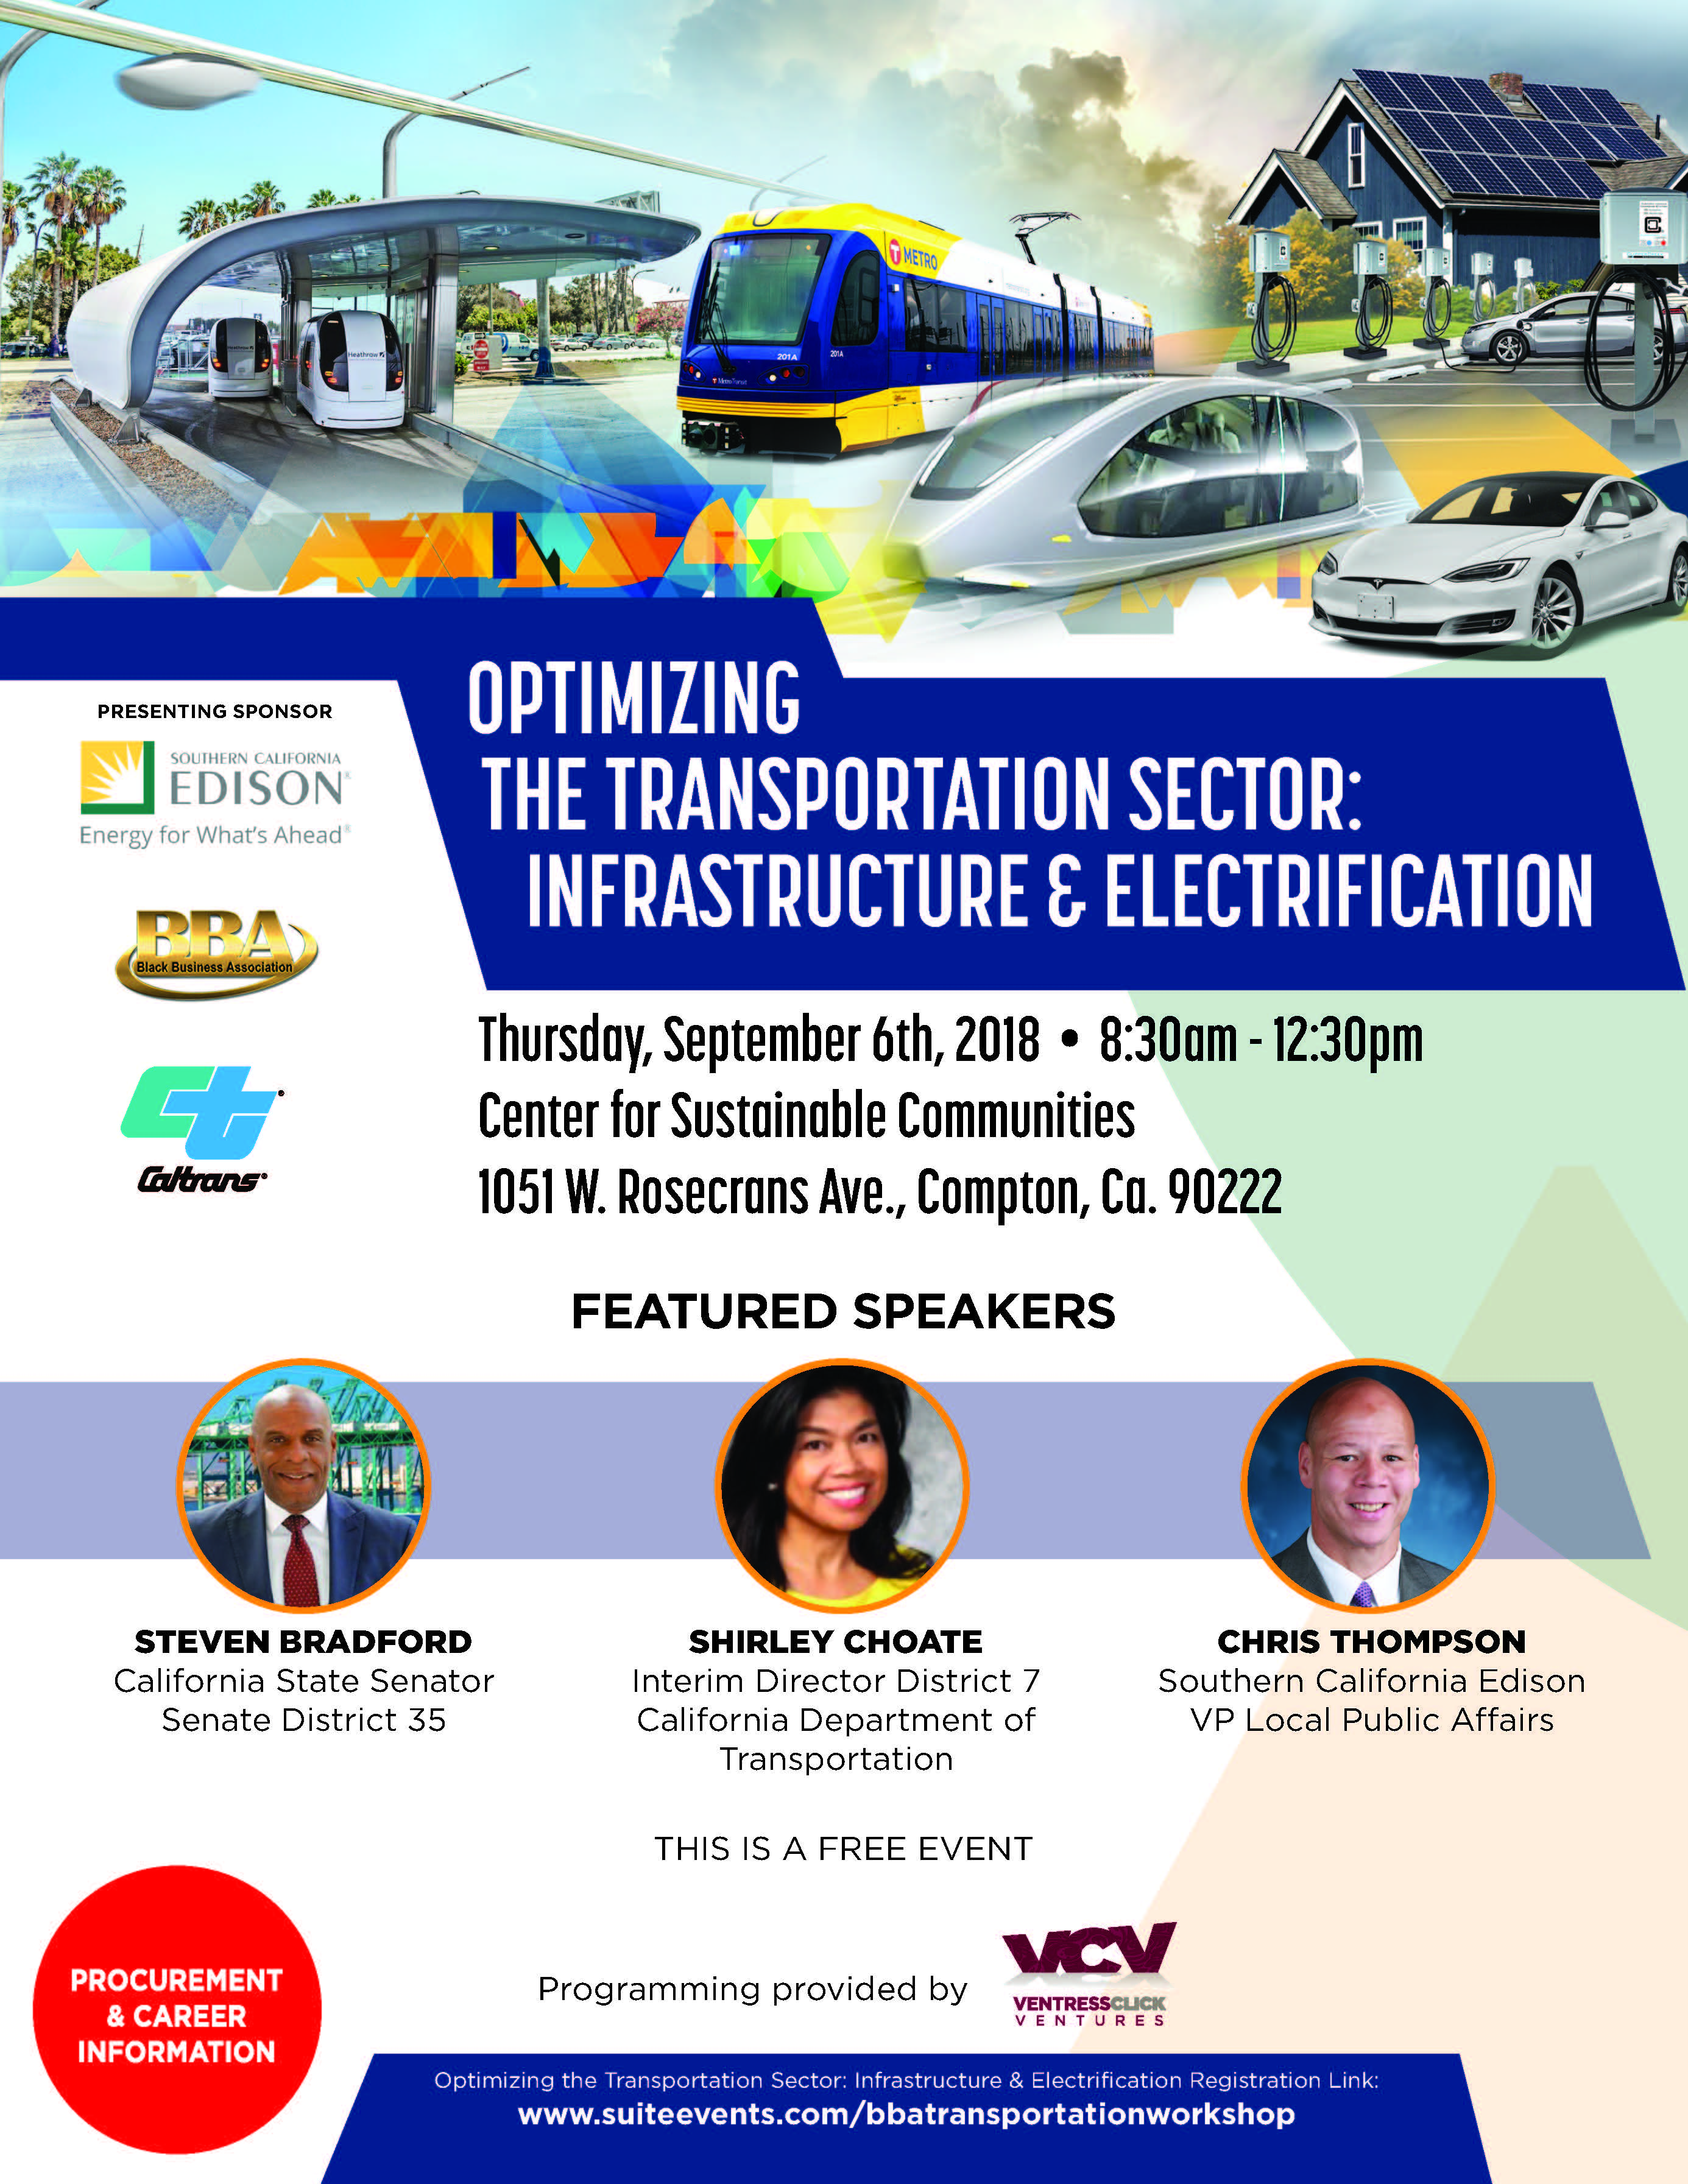 OPTIMIZING THE TRANSPORTATION SECTOR: INFRASTRUCTURE & ELECTRIFICATION